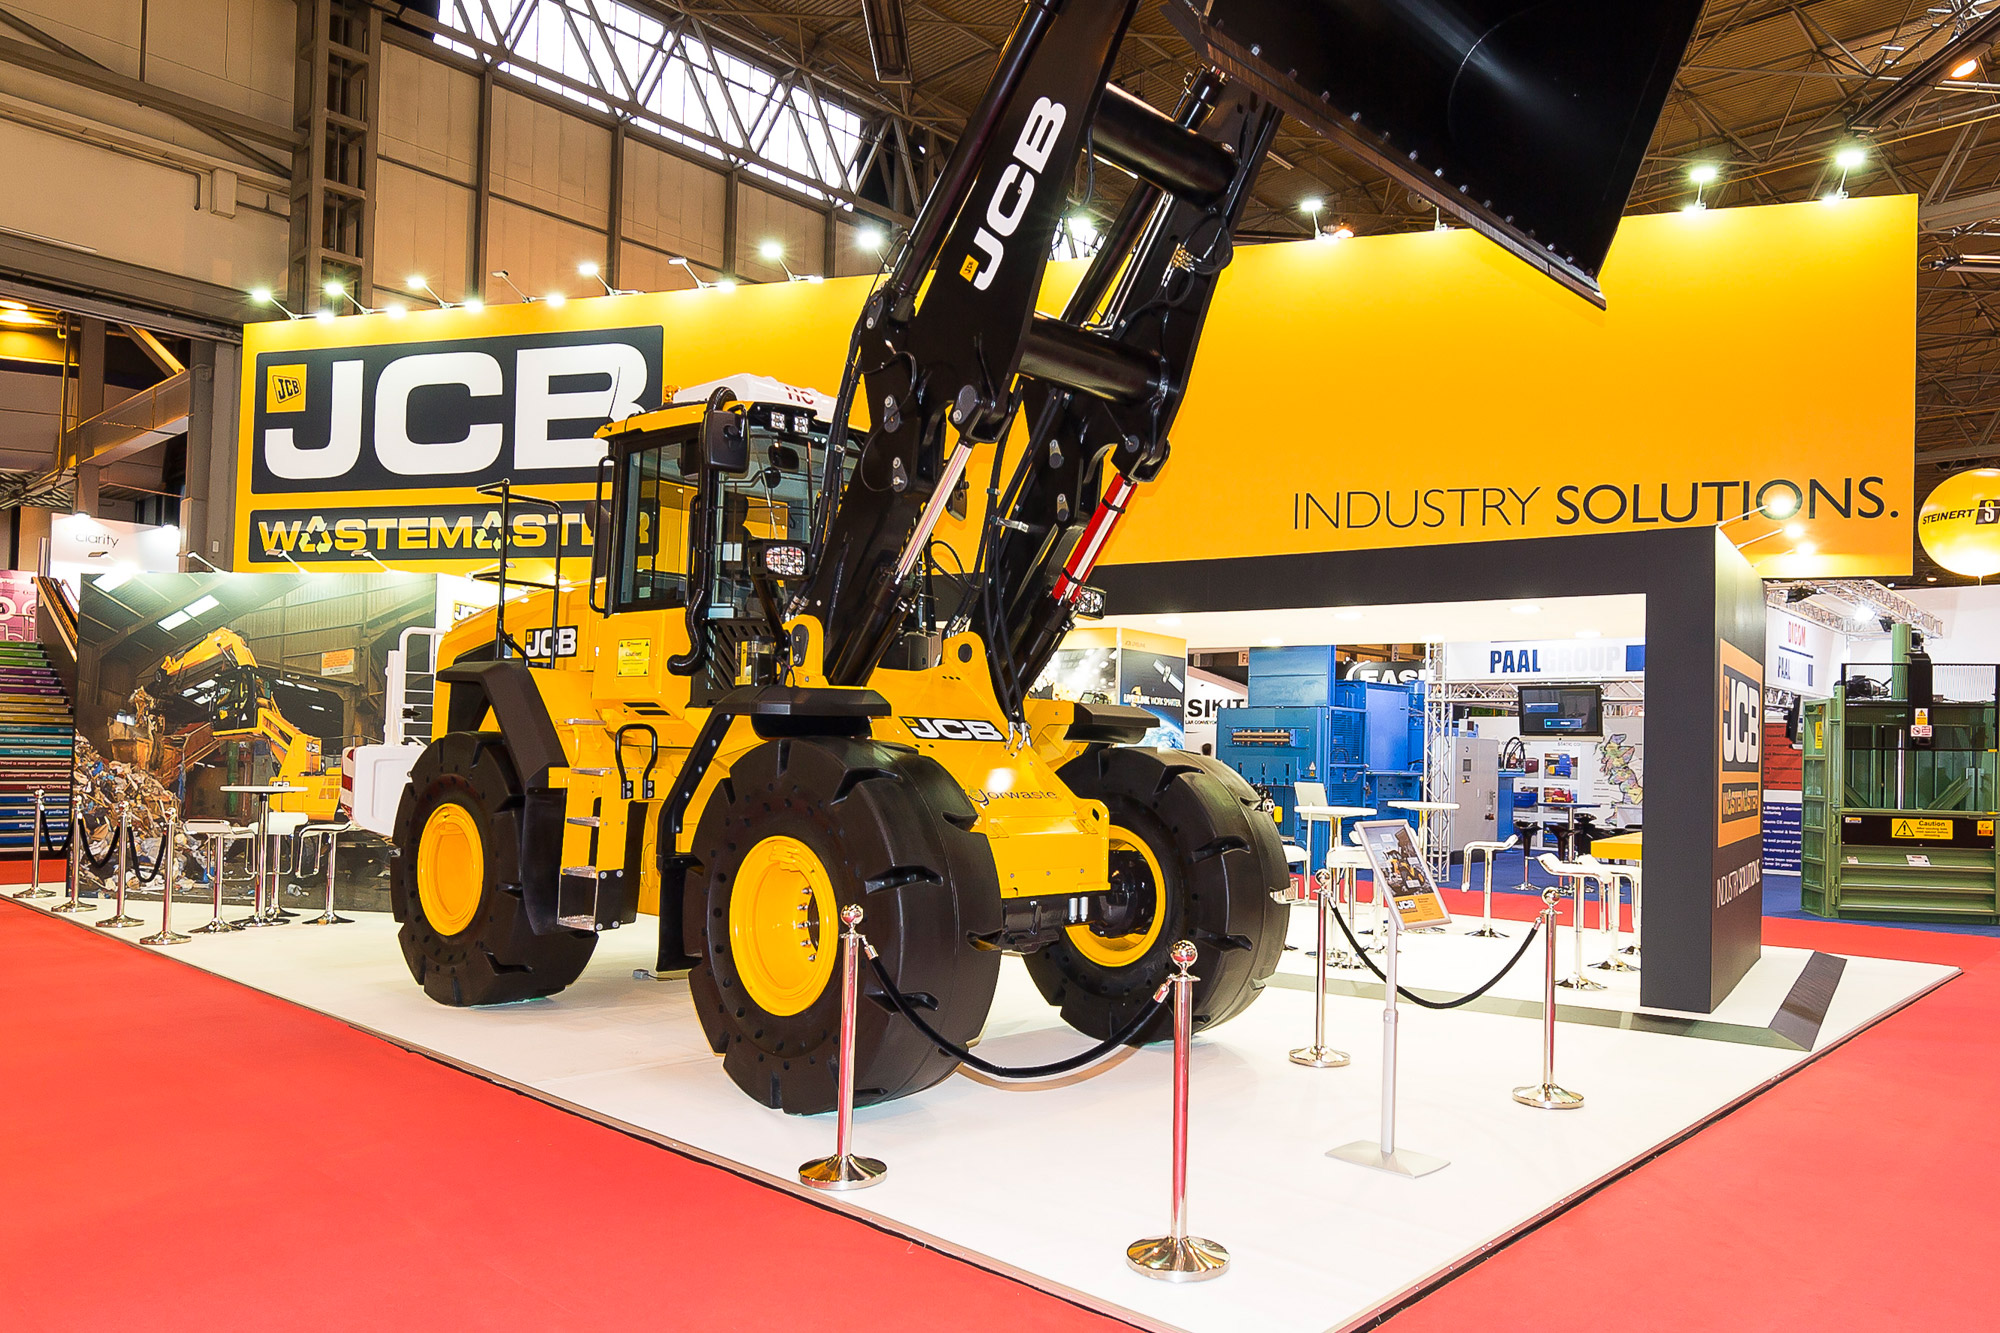 Exhibition design for JCB at RWM